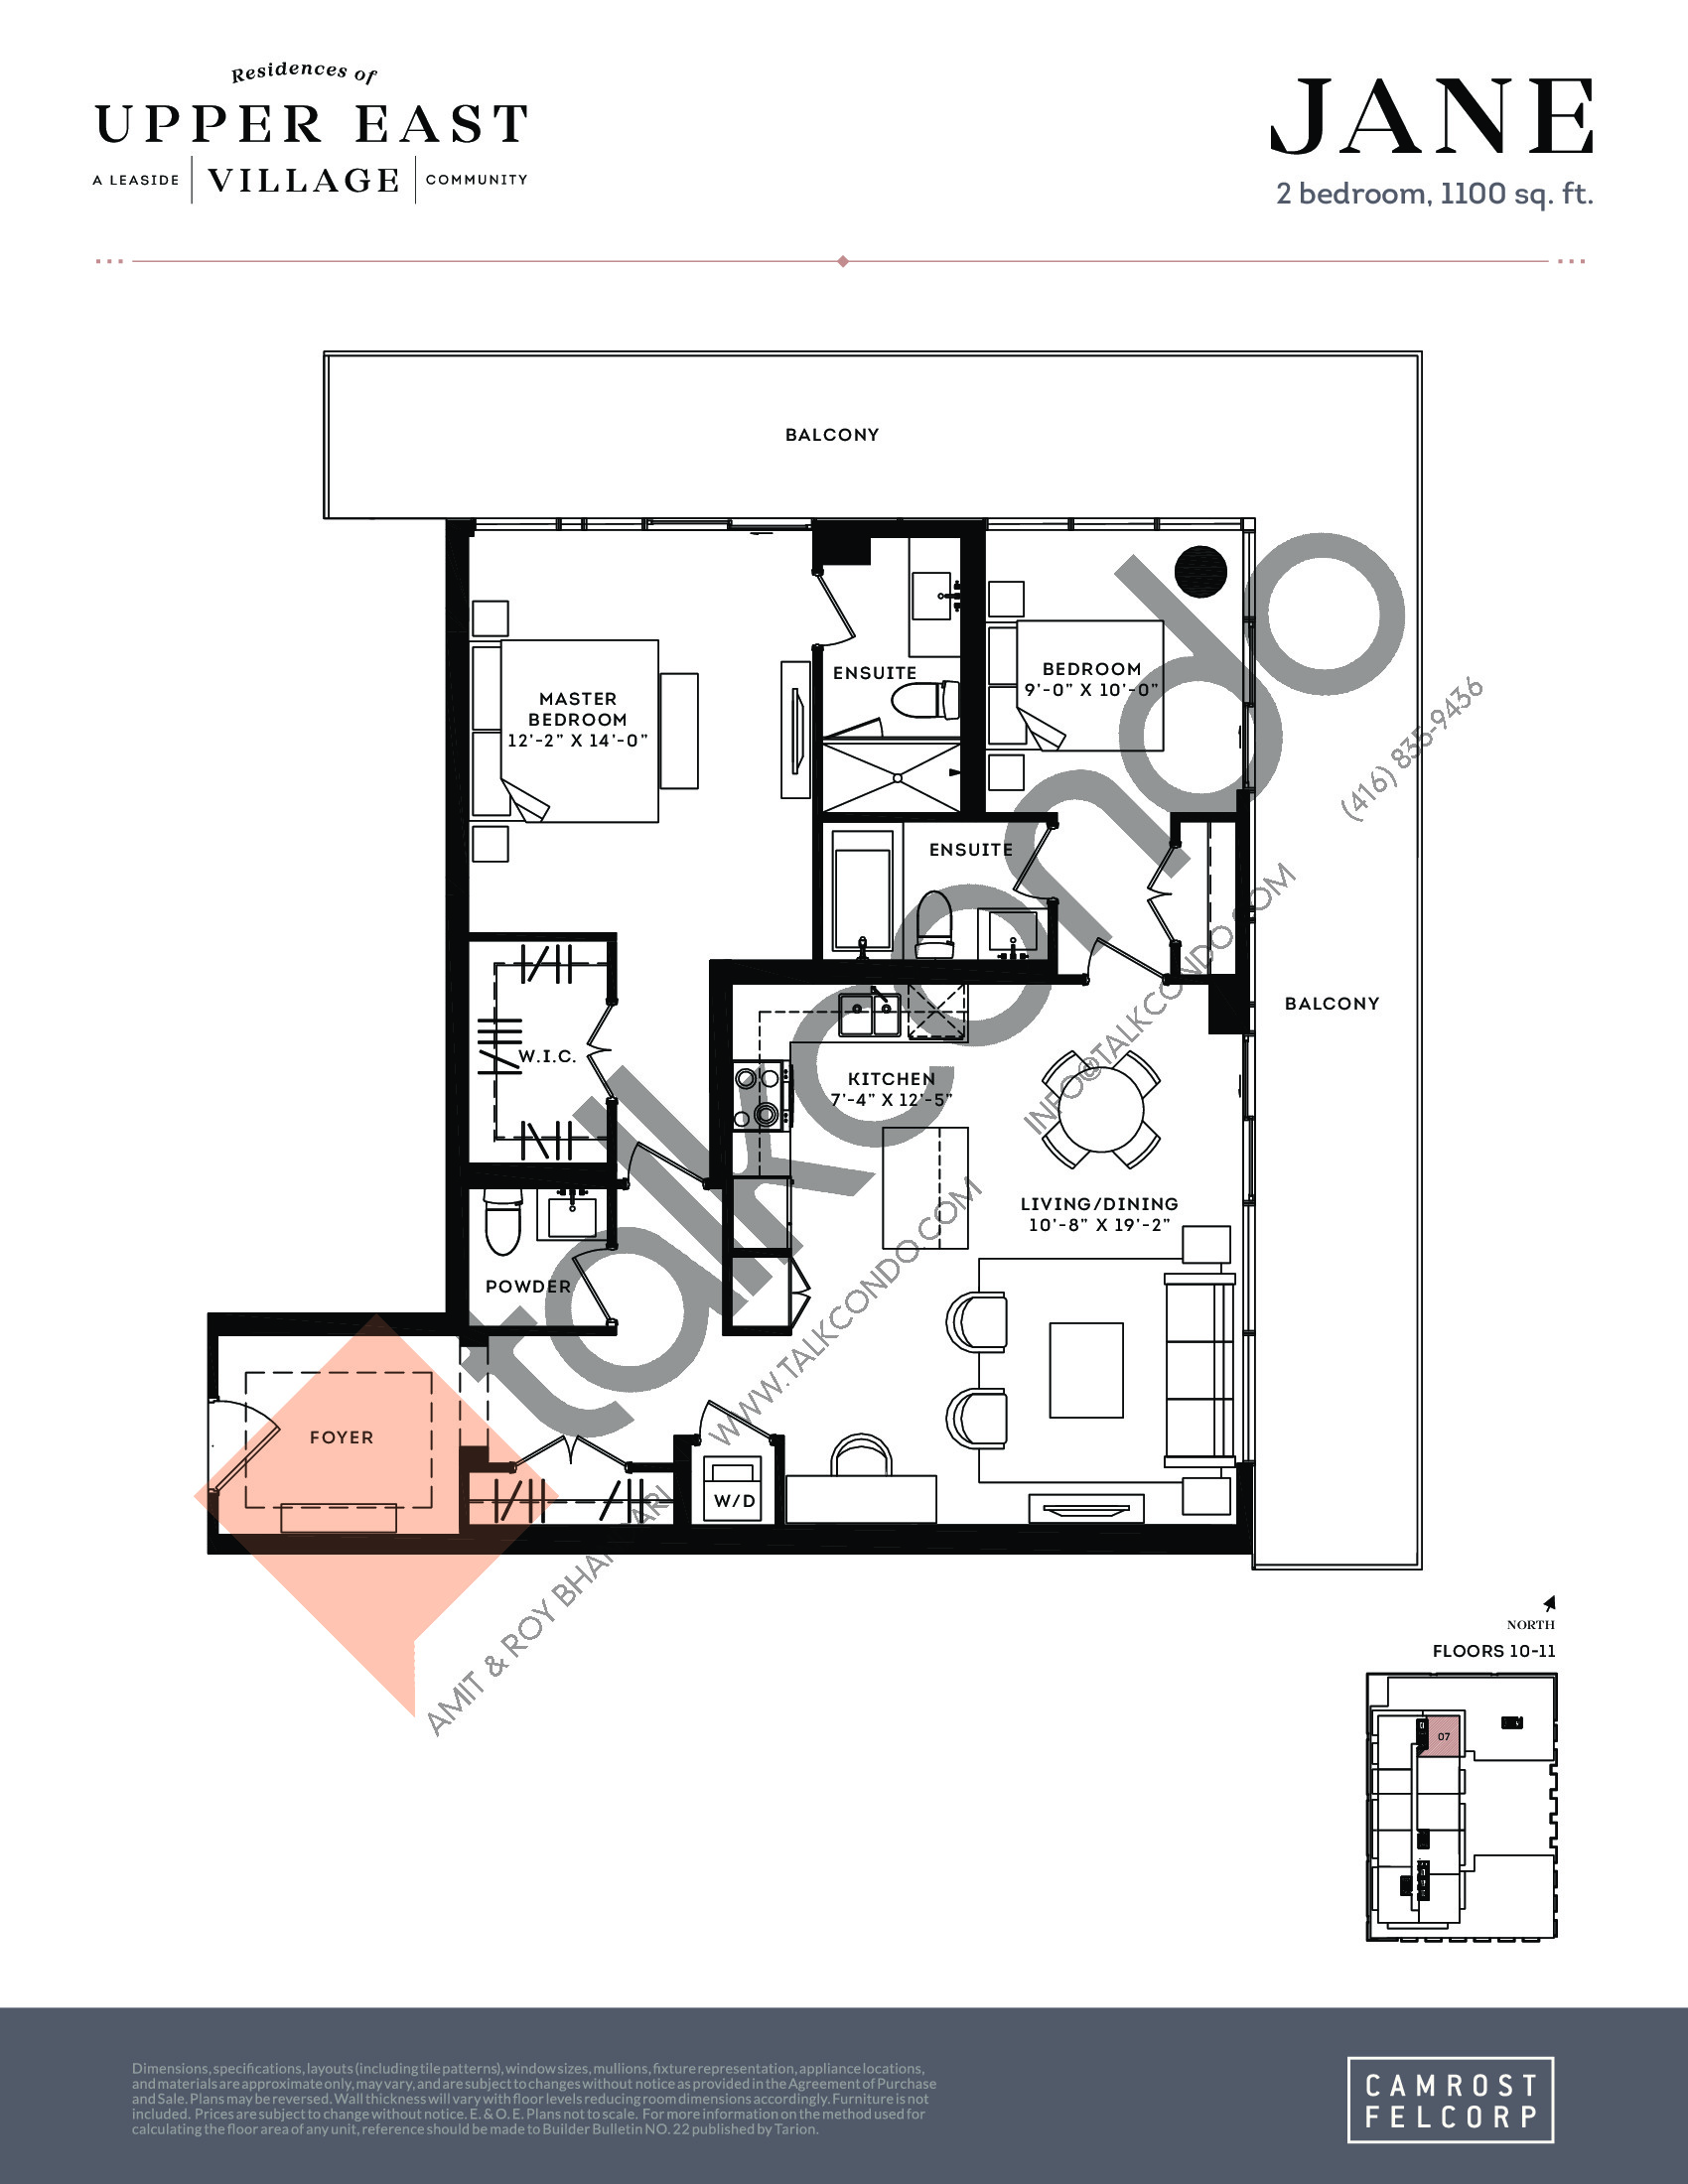 Jane (Signature Collection) Floor Plan at Upper East Village Condos - 1100 sq.ft